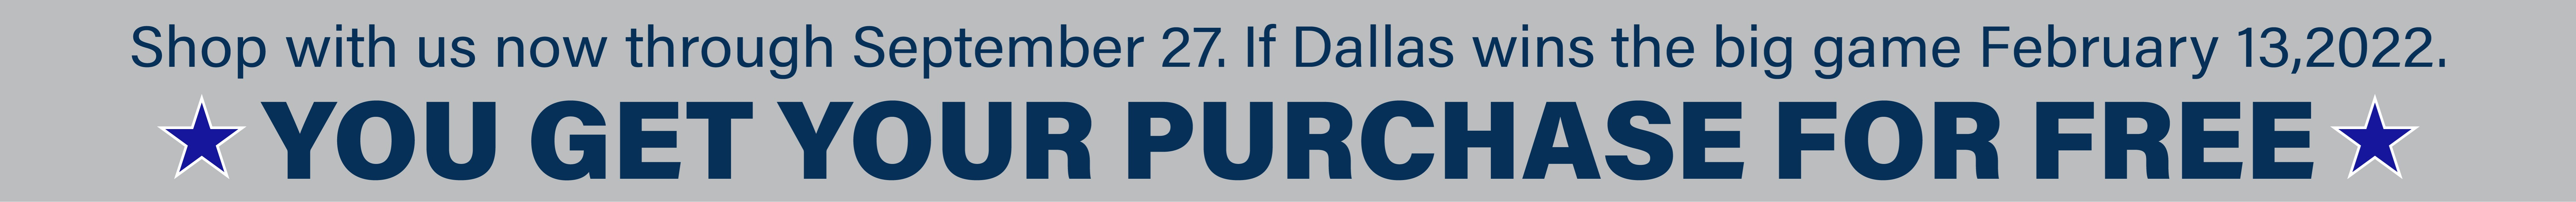 If Dallas wins the big game next year, you get your purchase for FREE